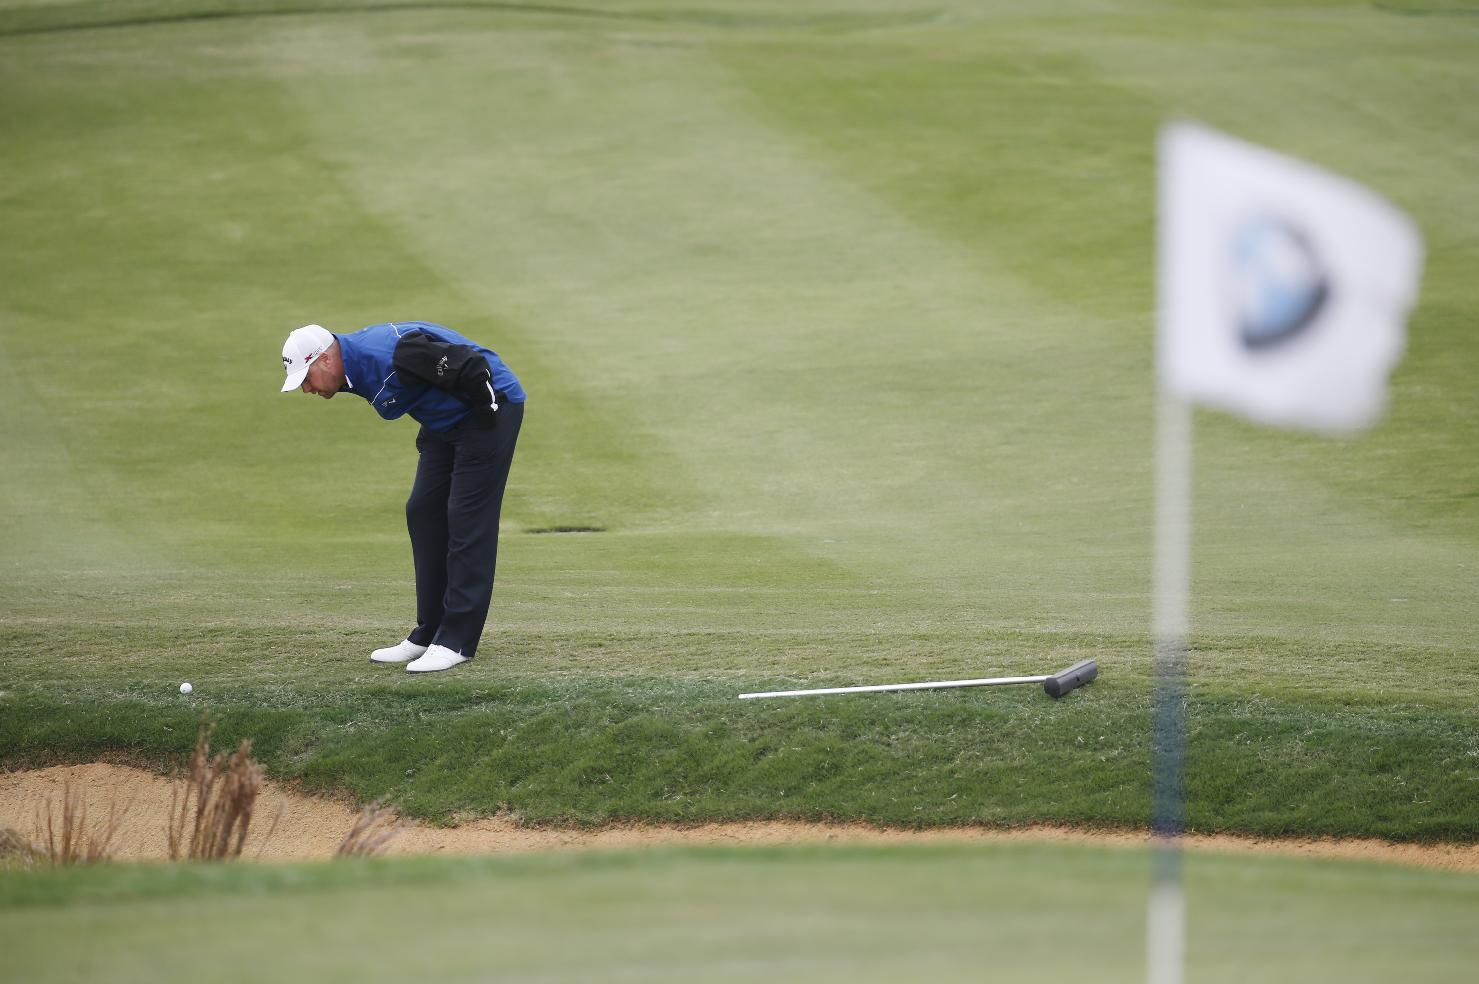 Craig Lee of Scotland looks at his shot on the edge of sound bunker on the 7th green during the second round of the BMW Masters golf tournament at the Lake Malaren Golf Club in Shanghai, China, Friday, Oct. 25, 2013